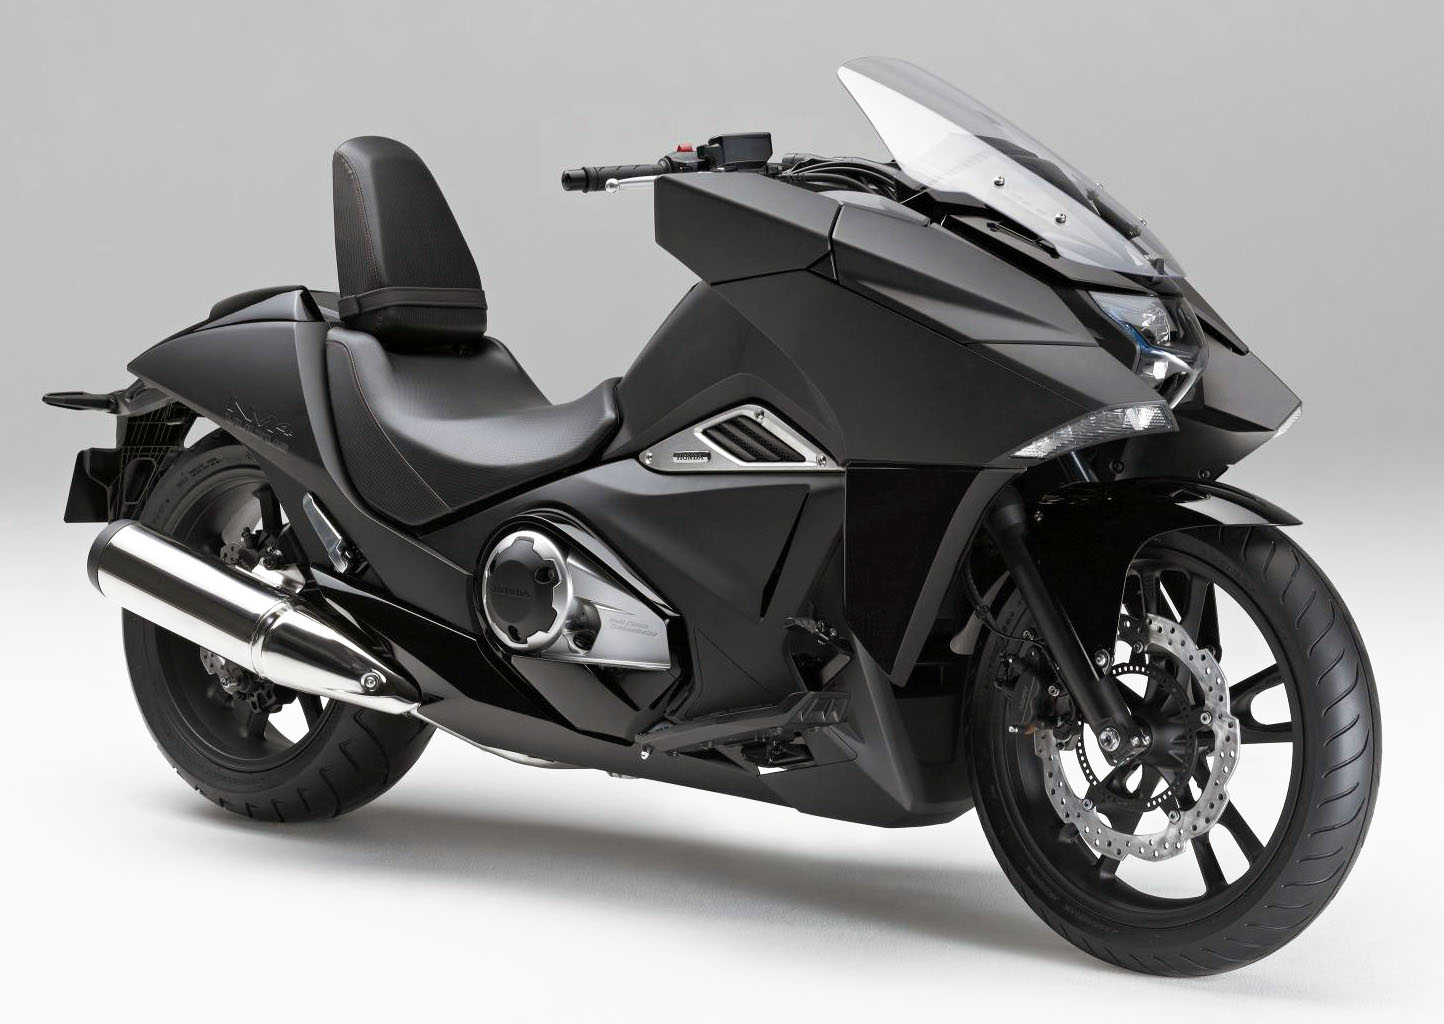 Honda NM4 Vultus - a stealthy bike inspired by Japanimation